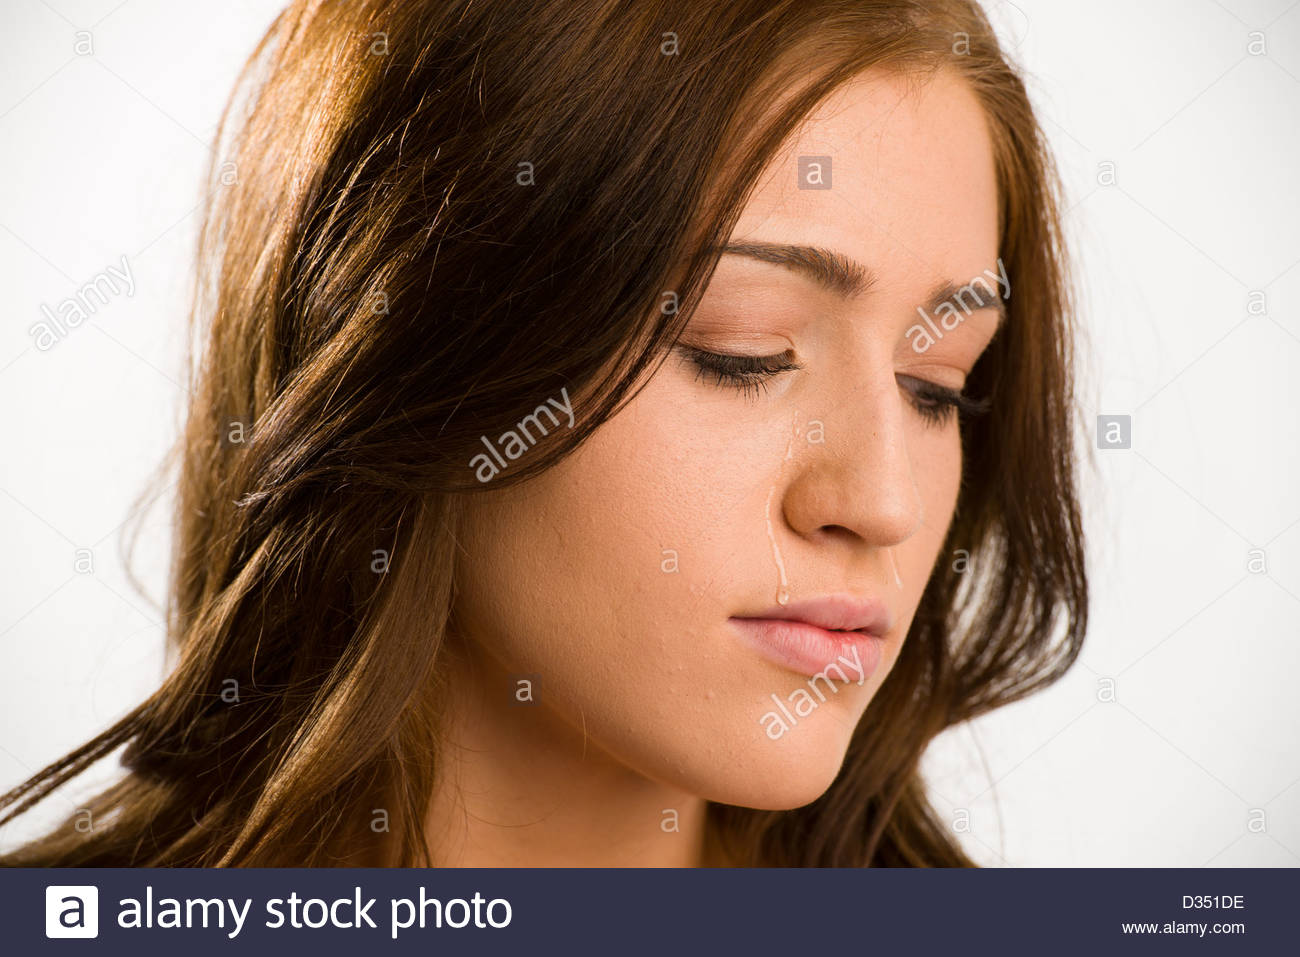 Closeup of a young woman with tears on her face. She is looking down. - Stock Image